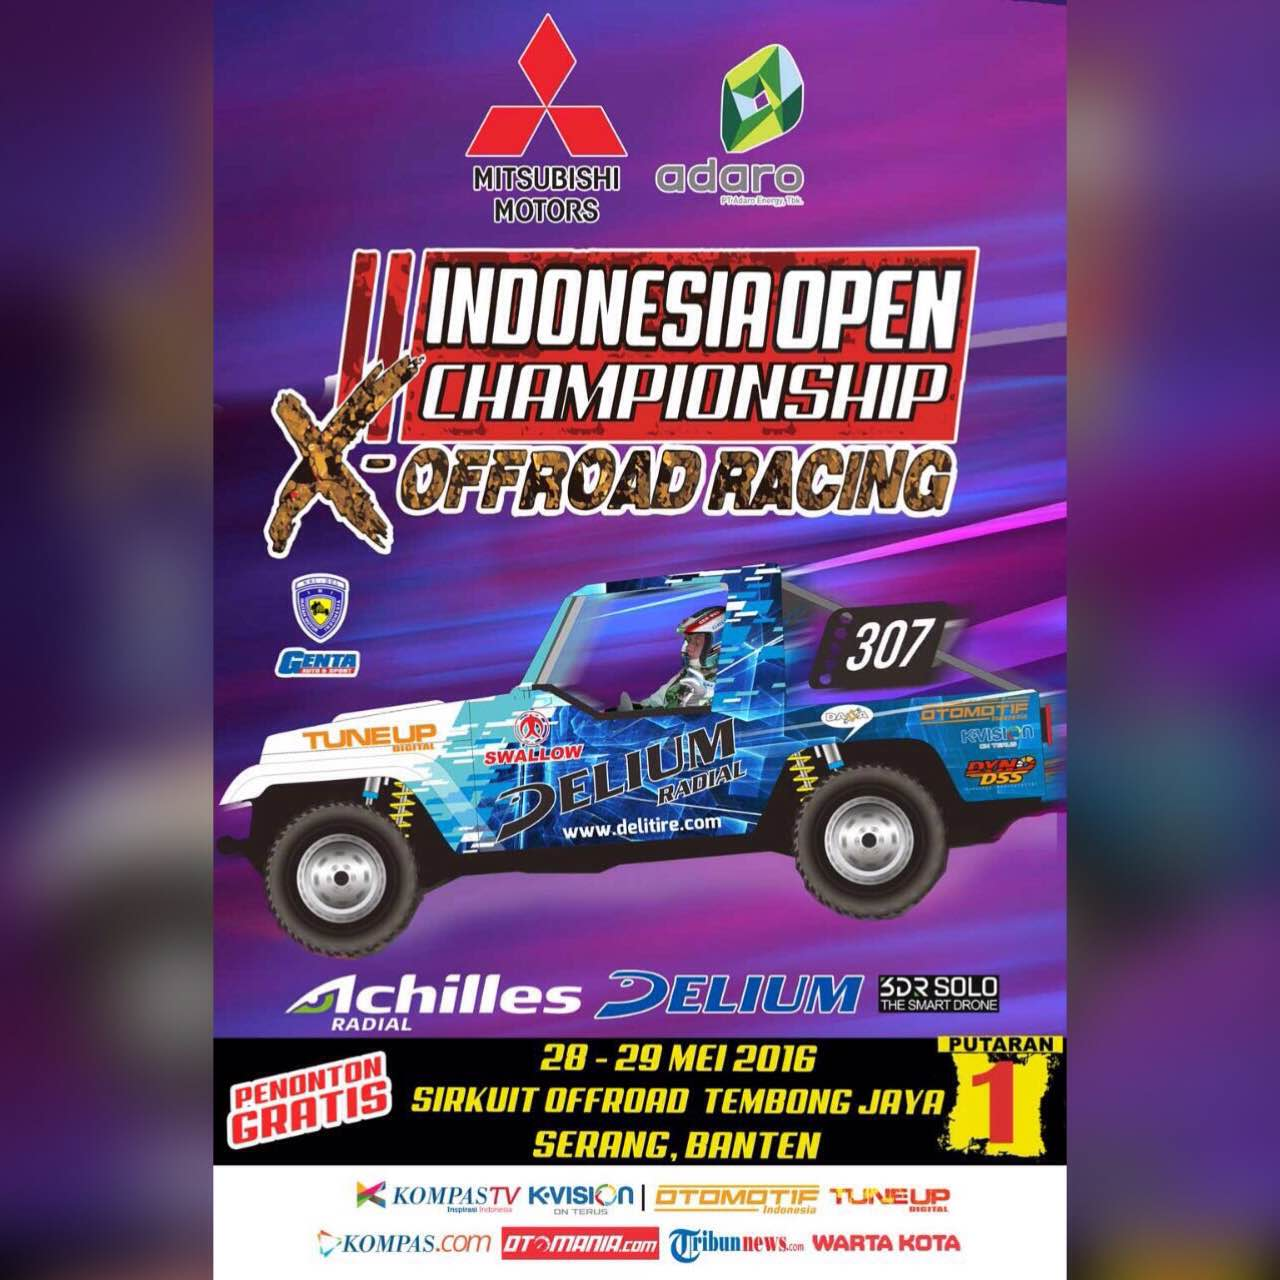 Indonesia Open Championship X-Offroad Racing 2016  : Tayang 5 Putaran